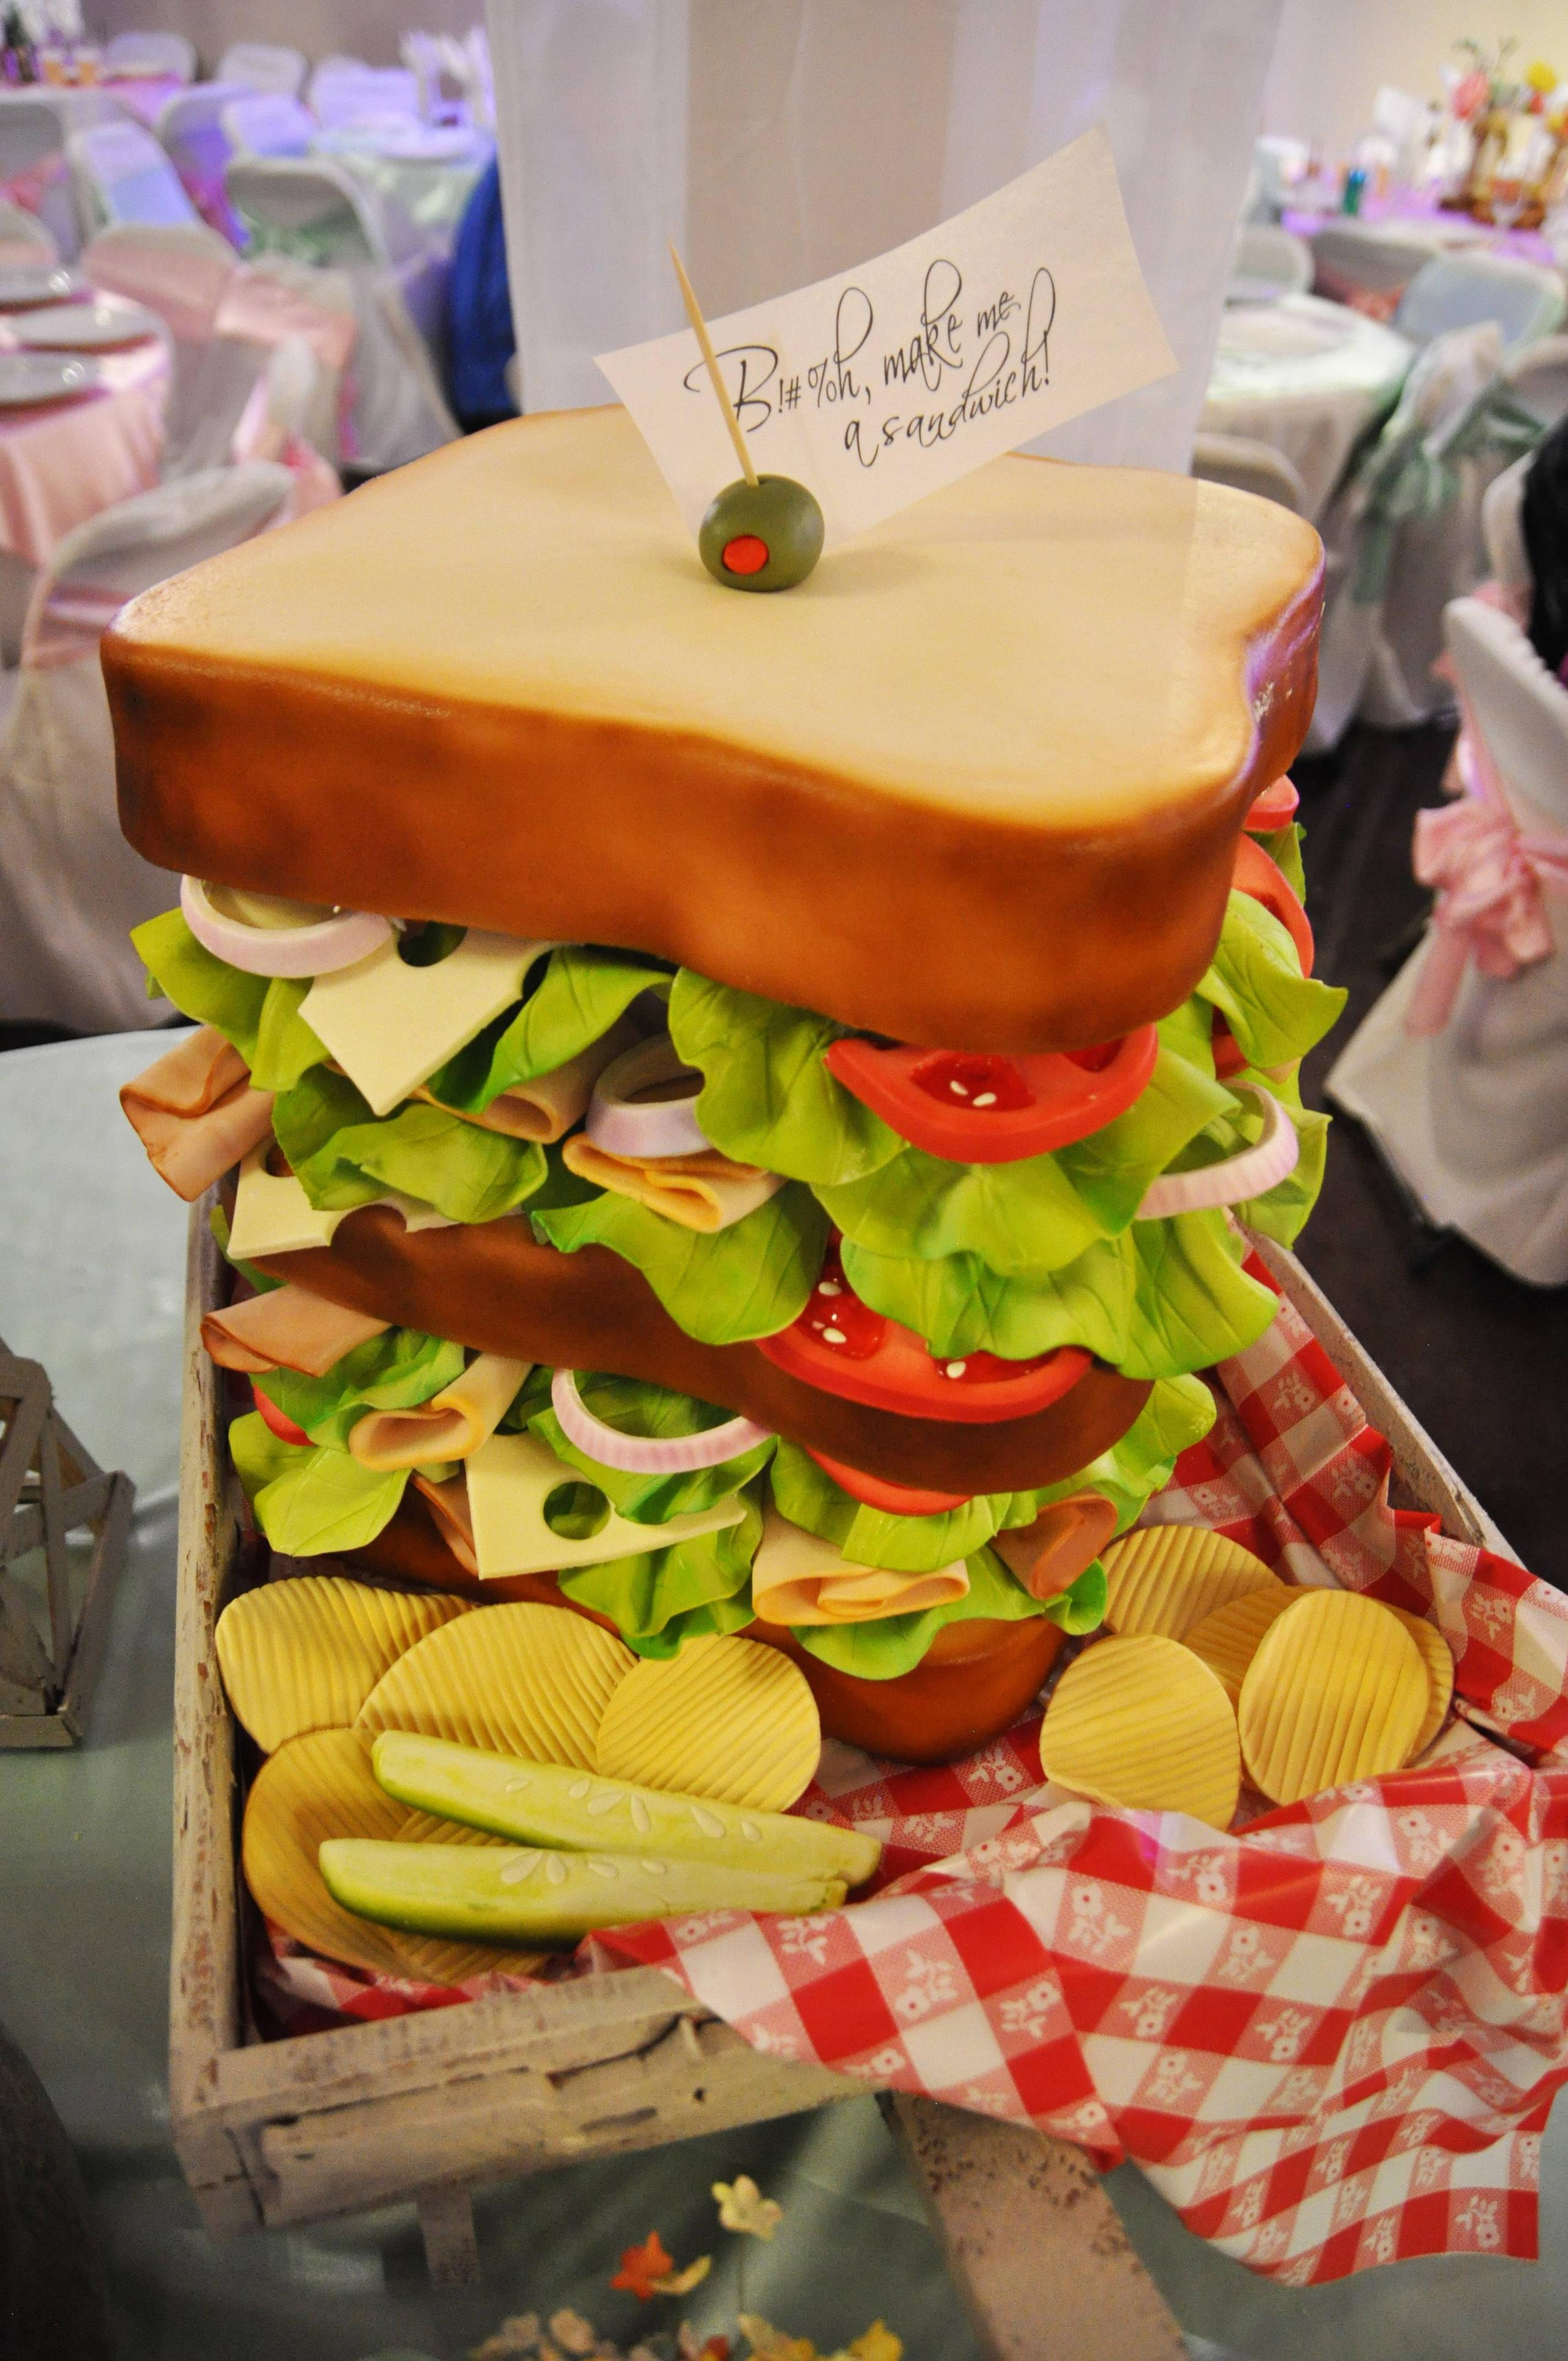 26 Of The Most Creative Cakes That Are To Adorable To Eat